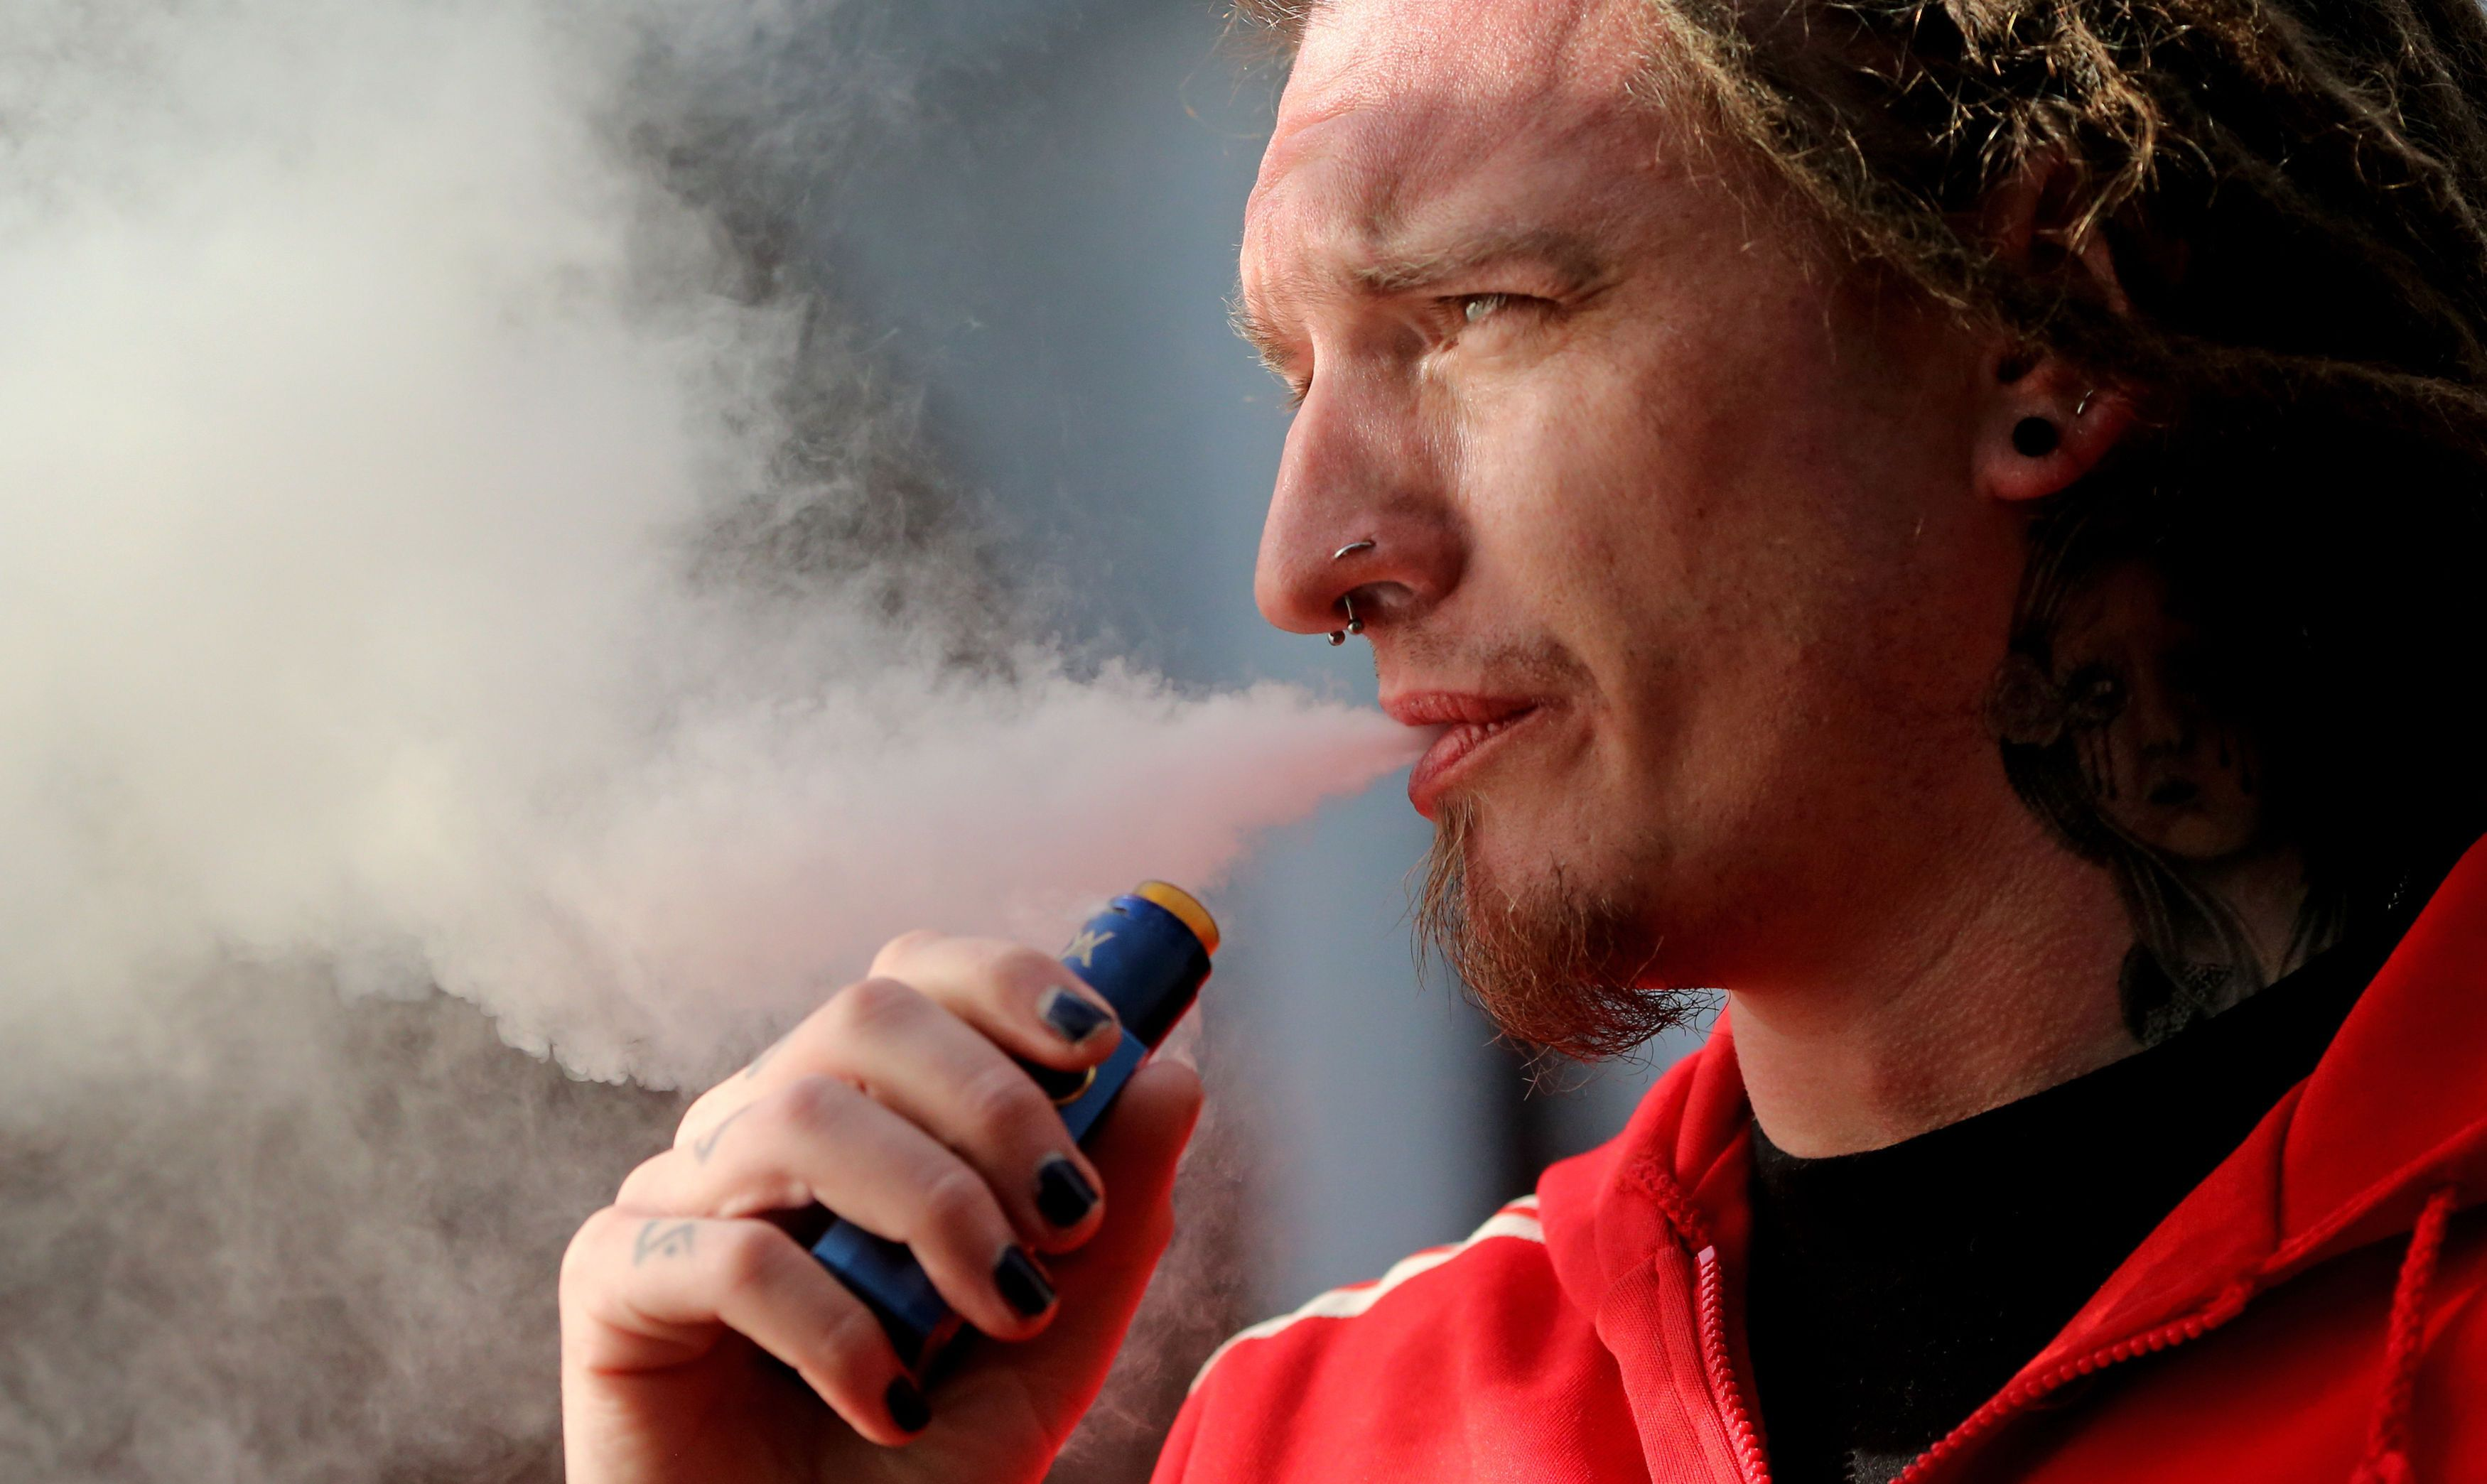 Make E-Cigarettes Available On The NHS, MPs Urge